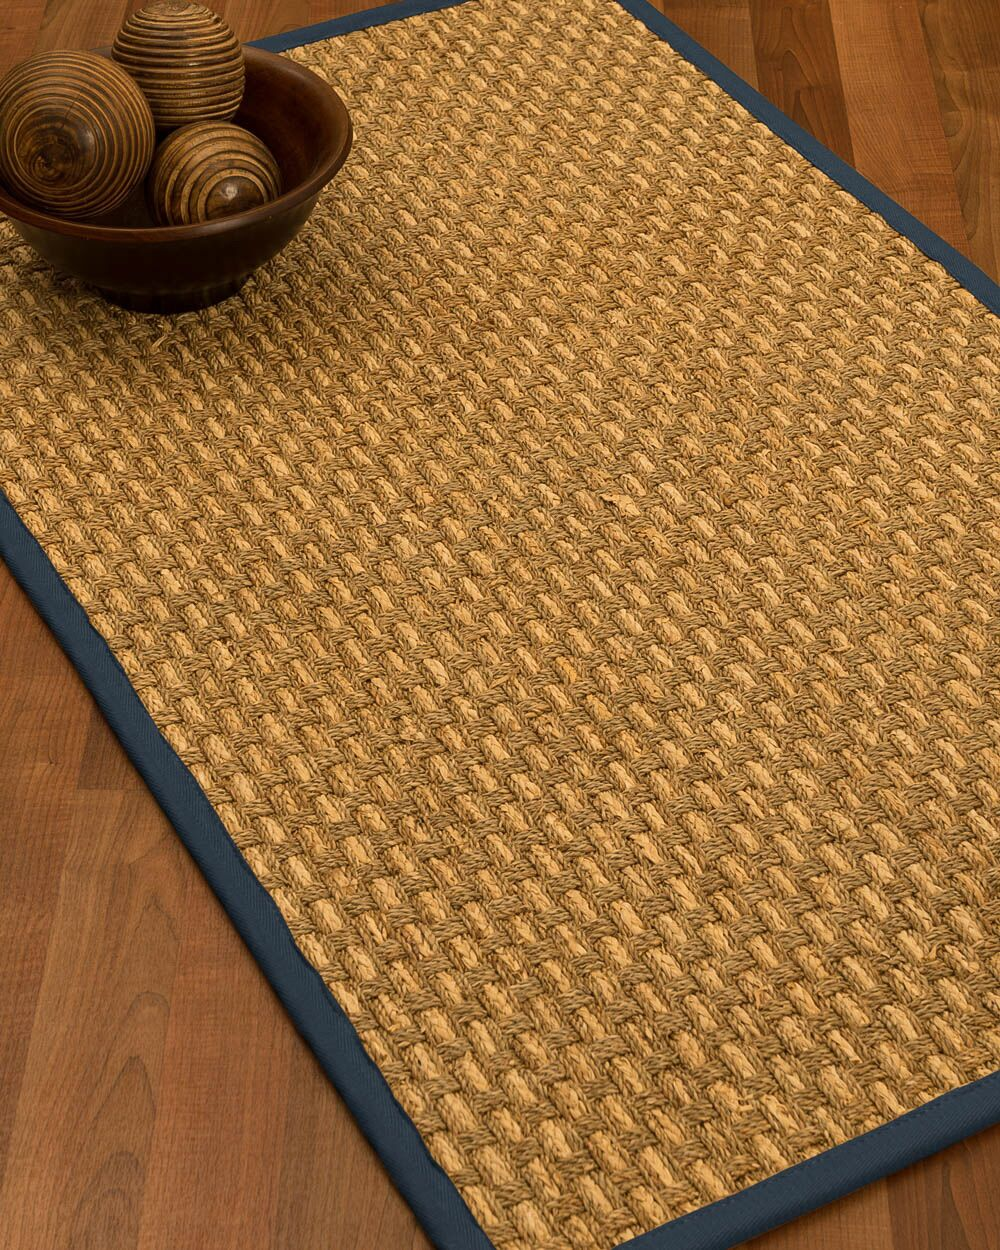 Castiglia Border Hand-Woven Beige/Marine Area Rug Rug Pad Included: No, Rug Size: Runner 2'6